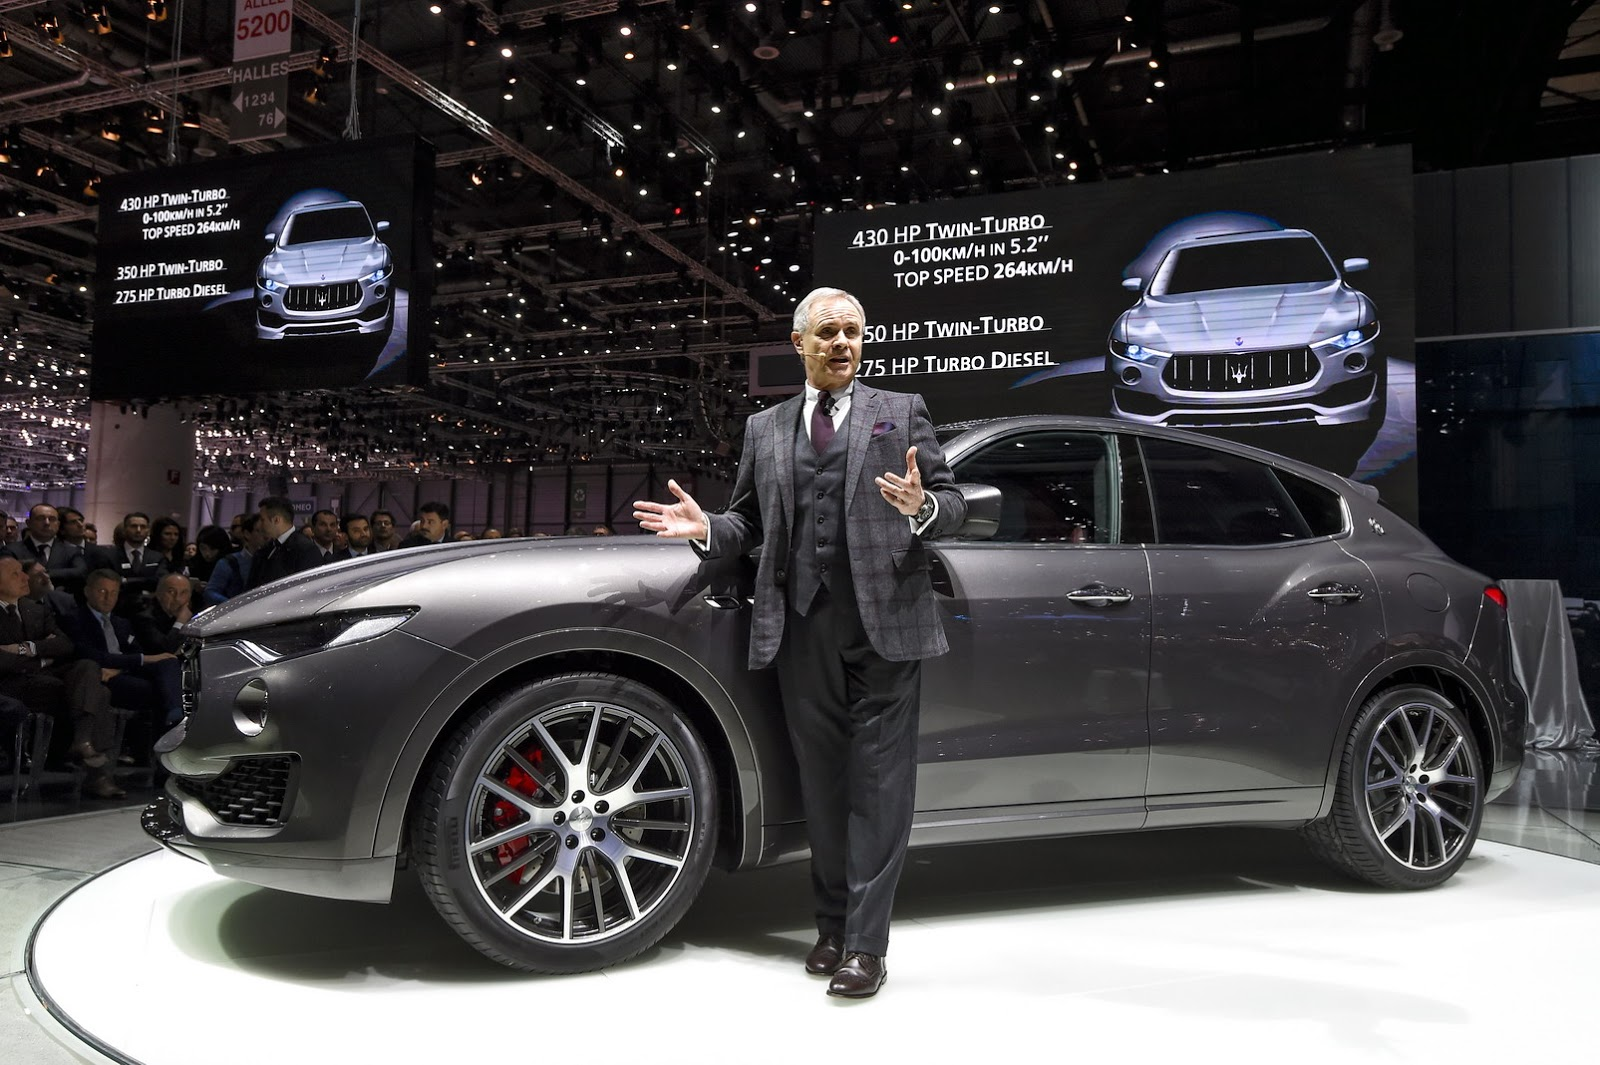 New Maserati Levante Suv Detailed In Geneva Just As